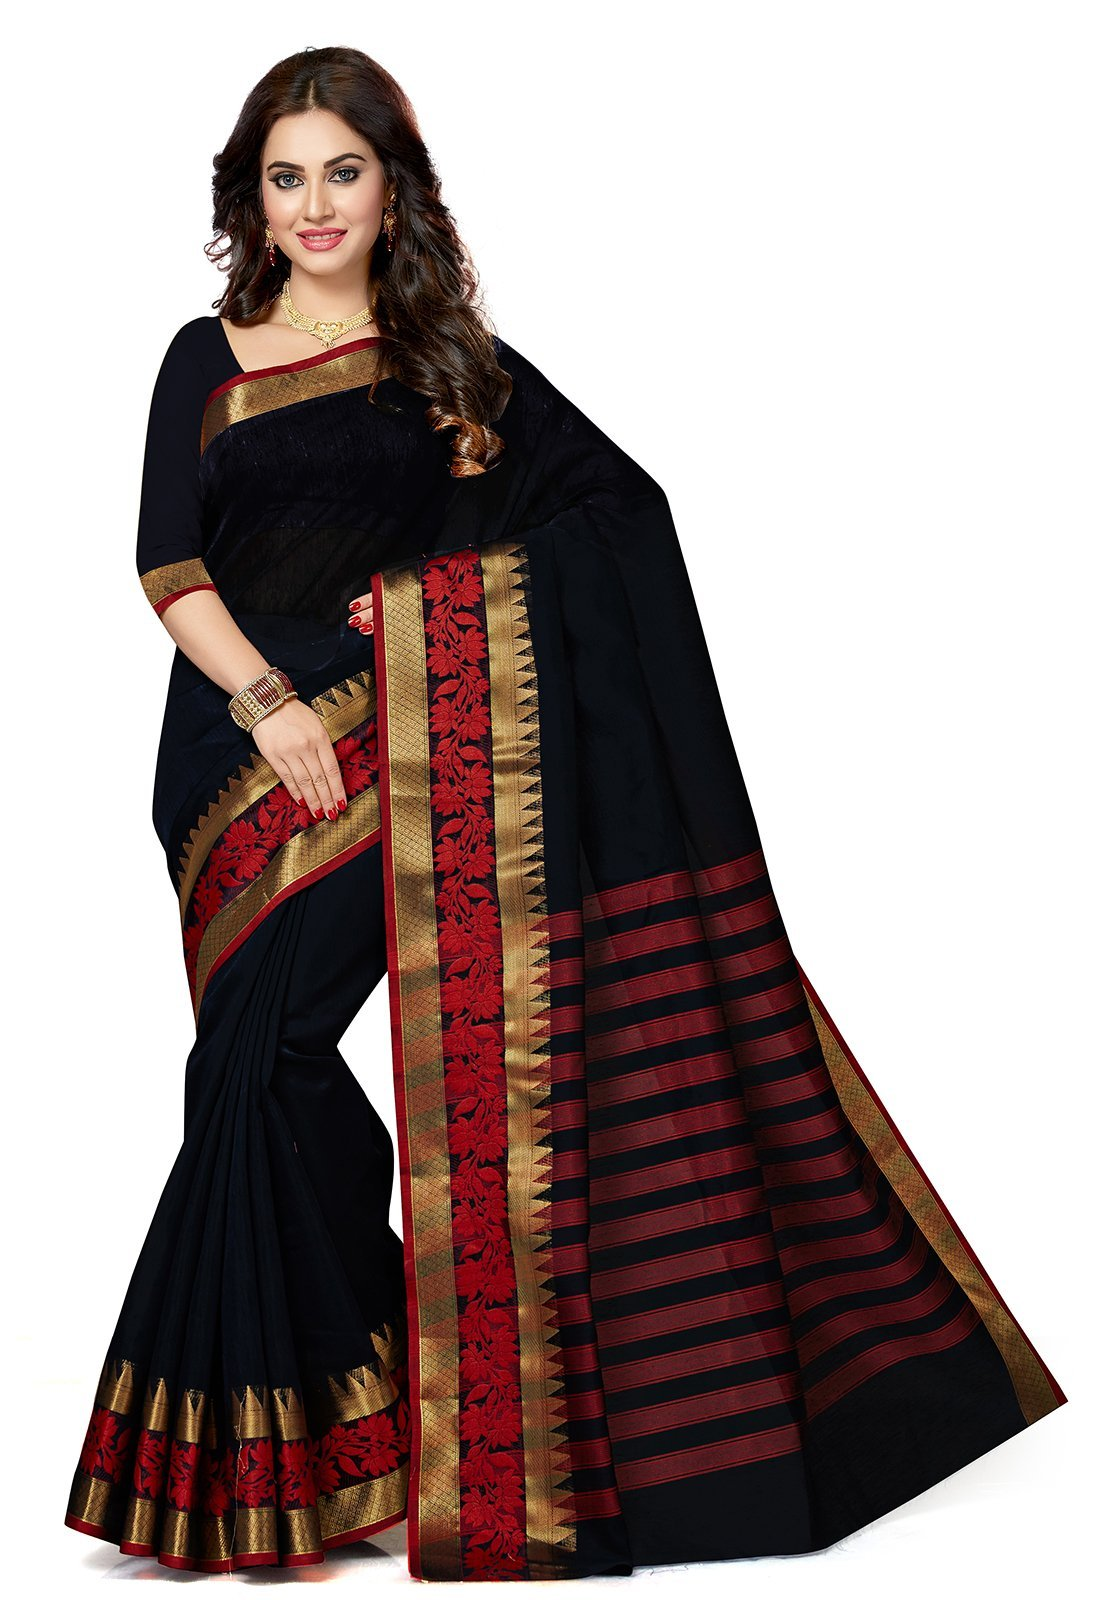 ishin Women's Chanderi Cotton Navy Blue Solid Party Wear Wedding Wear Casual Wear Festive Wear Bollywood New Collection With Golden Zari Border Latest Design Trendy Saree/Sari Free Size Navy blue